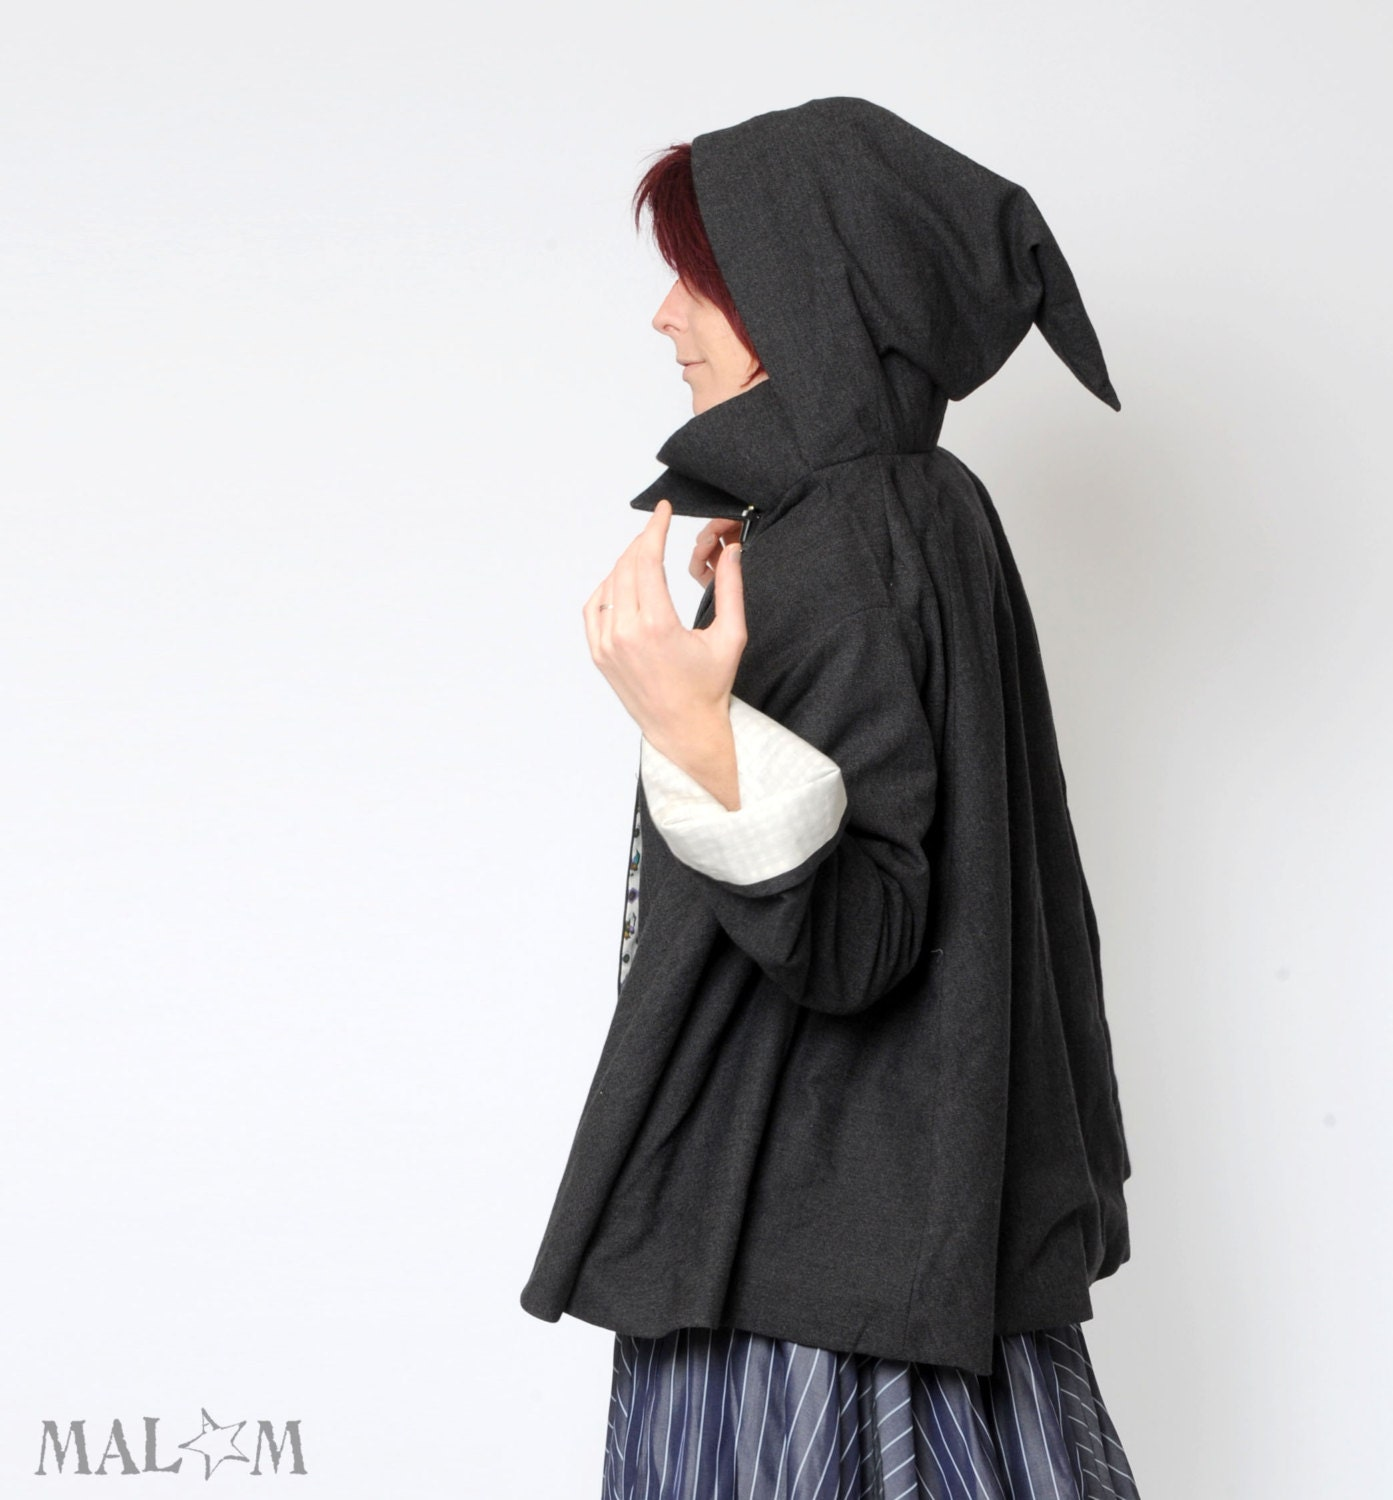 Goblin Hood Cape with sleeves - Dark grey wool Cape - Fall fashion - sz M-L - Malam